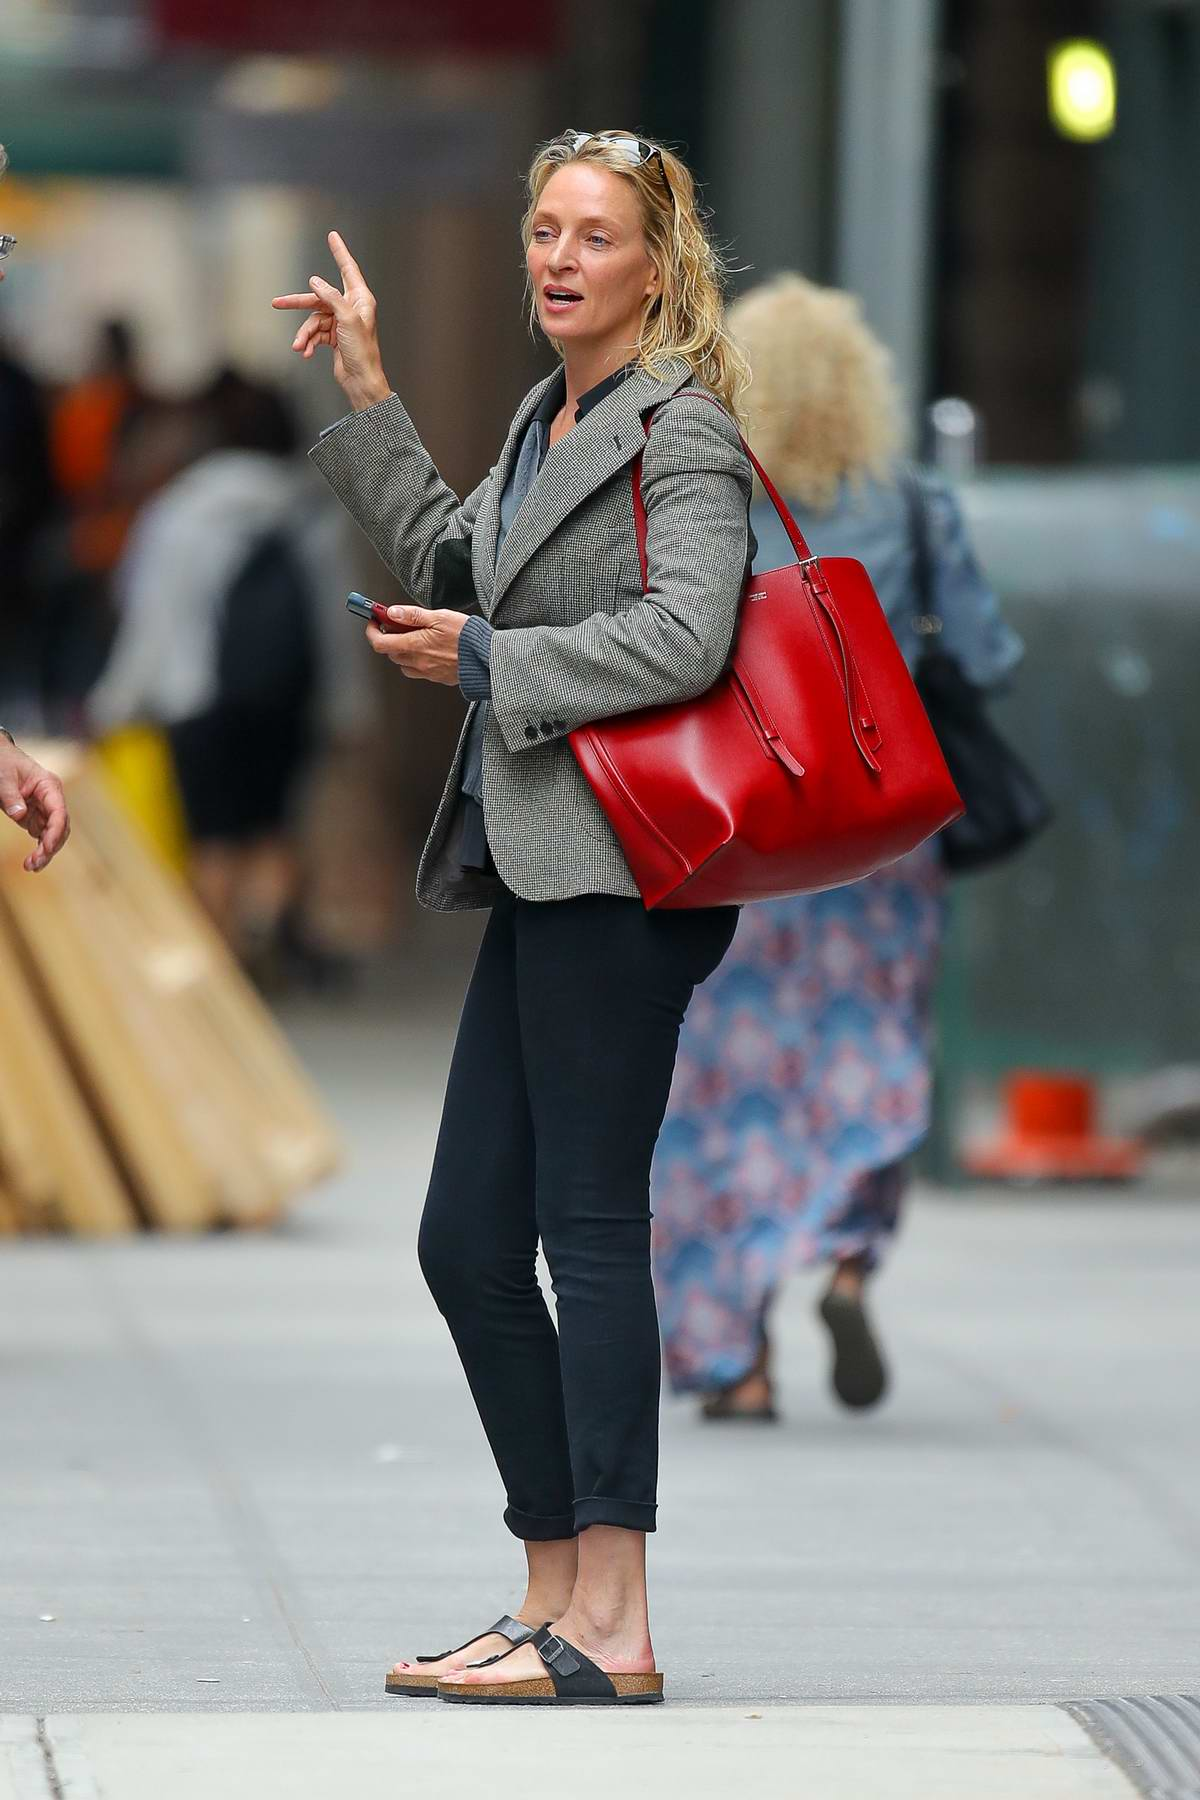 Uma Thurman seen asking for directions after visiting a hair salon in New York City